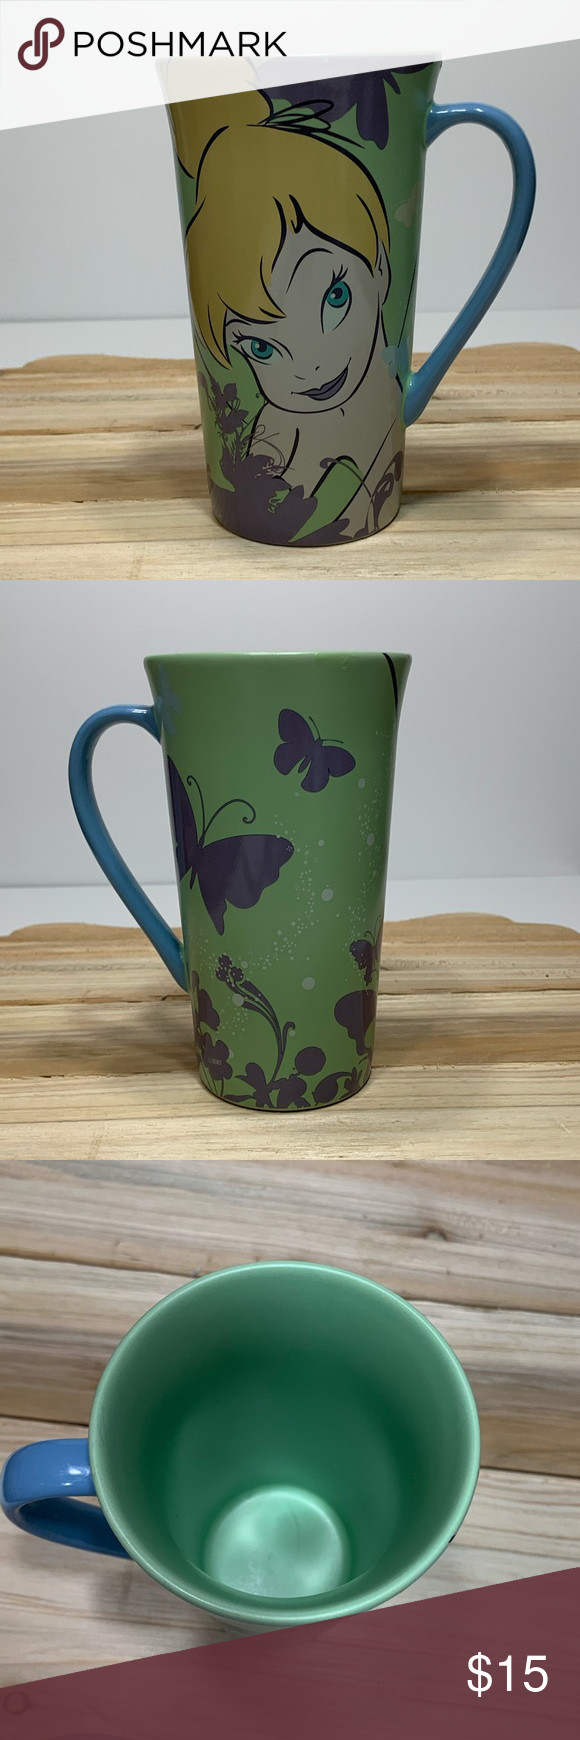 Disney tinker bell coffee mug 17 oz cup Pre-owned in good condition coffee mug Disney Kitchen Coffee & Tea Accessories #disneykitchen